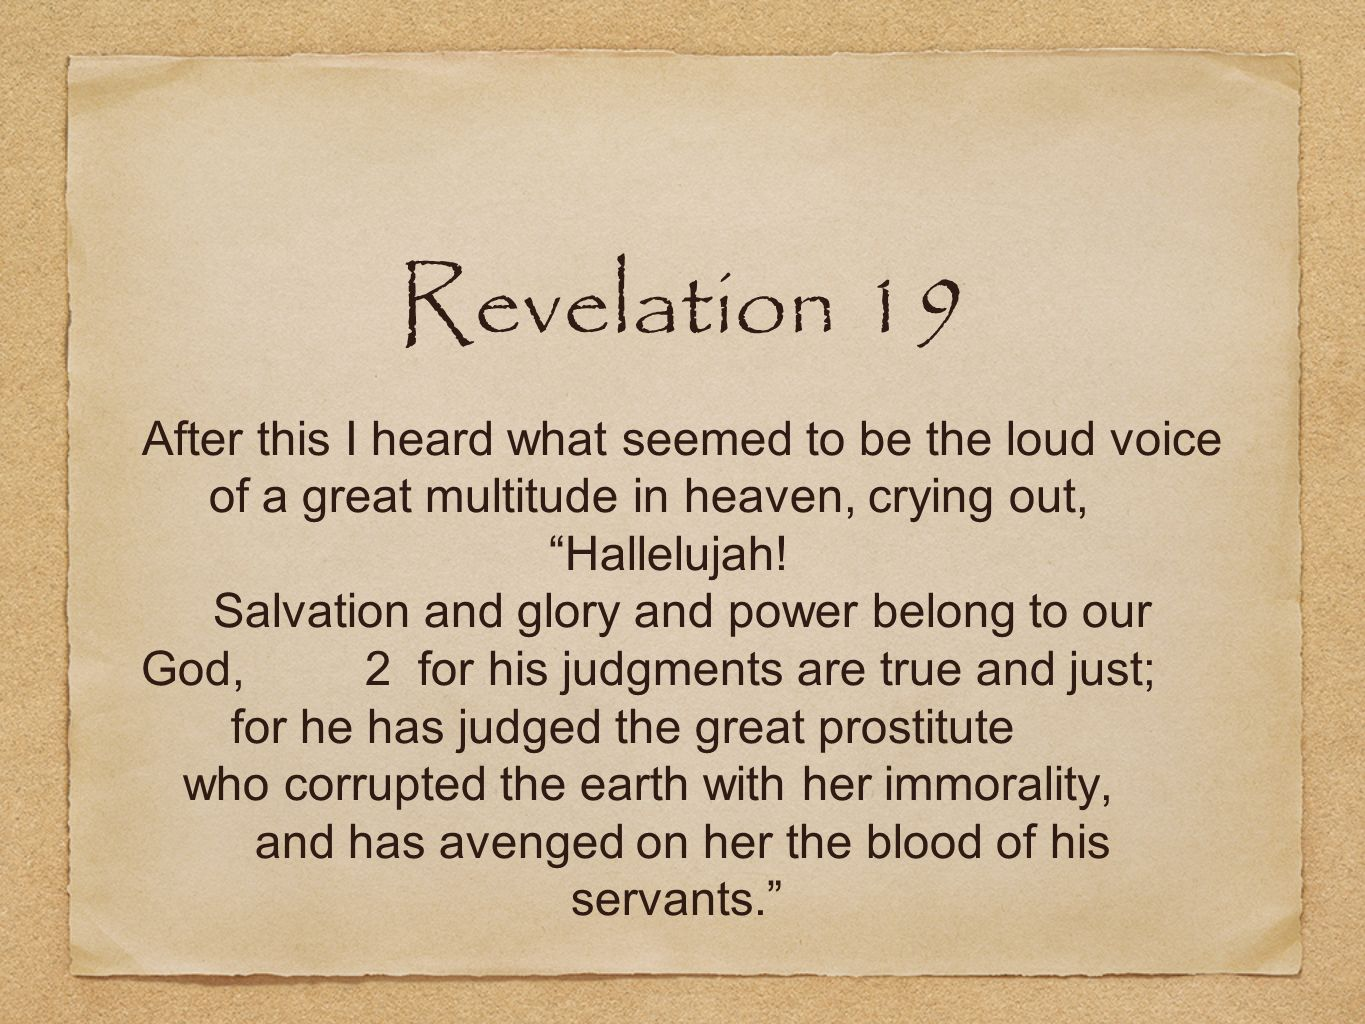 Revelation 19 After this I heard what seemed to be the loud voice of a great multitude in heaven, crying out, Hallelujah! Salvation and glory and powe